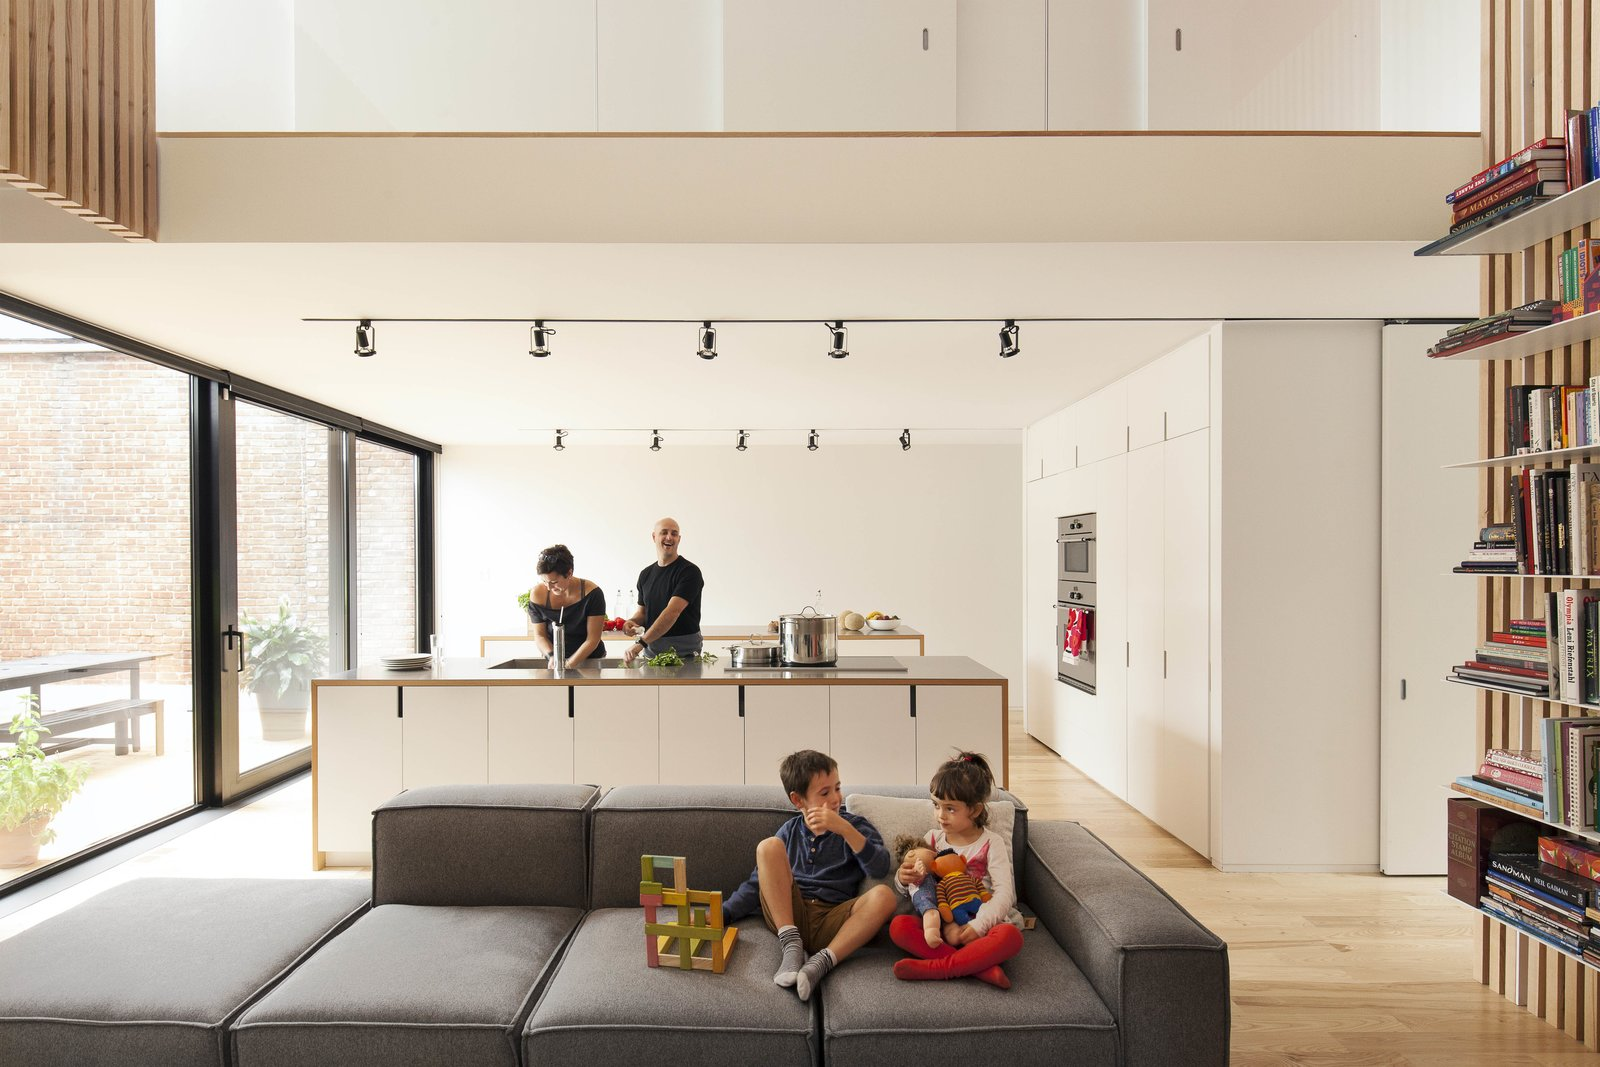 "The architects arranged the ""service areas"" of the home—closets, a bathroom, storage space, and most of the kitchen appliances—in a block near the entrance, a move that allows for clear views across the open-plan kitchen and living areas."